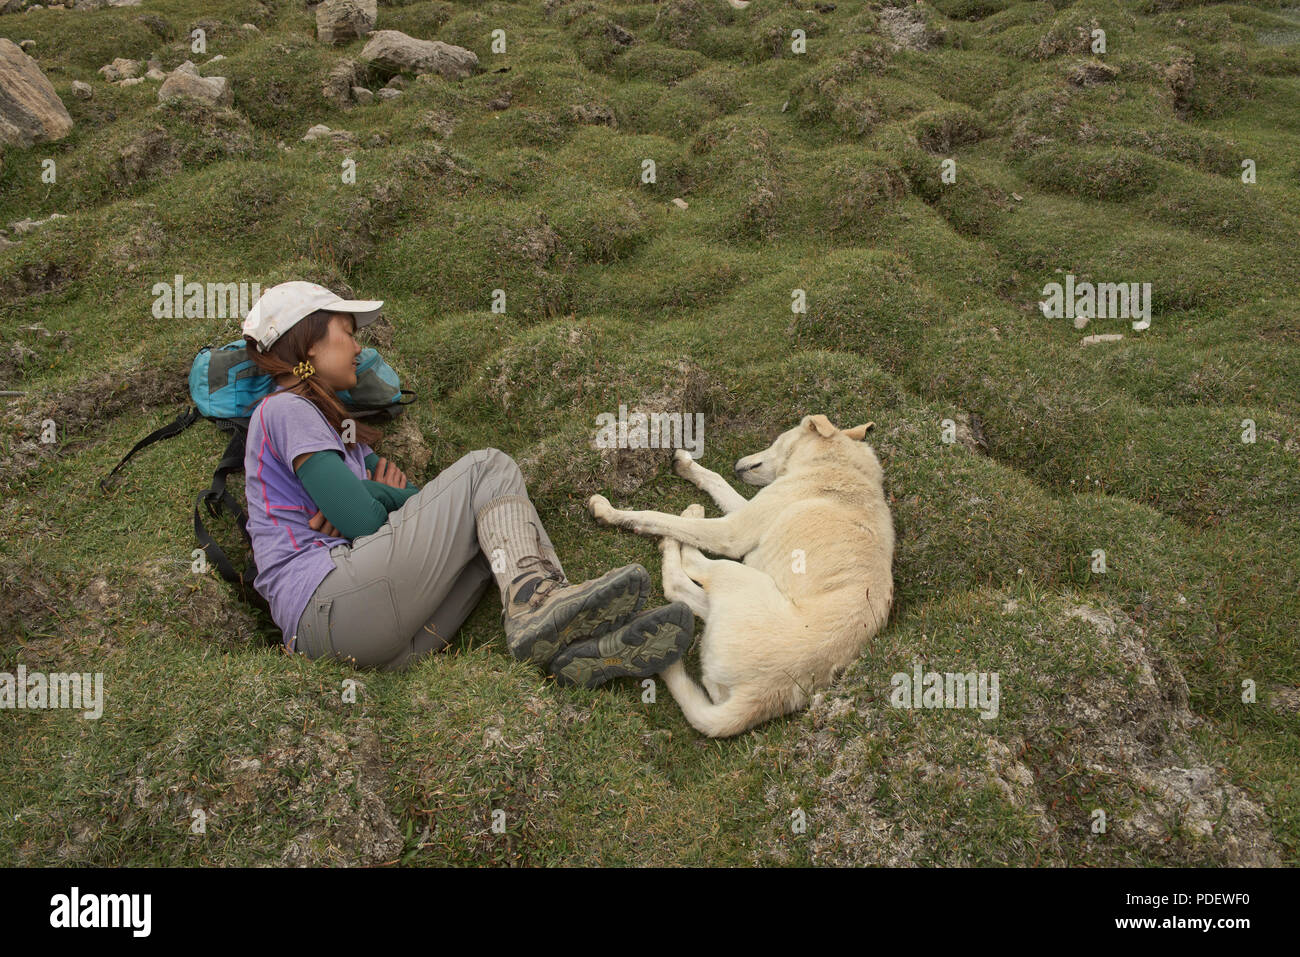 Asleep with the dog while trekking in the Wakhan Valley, Tajikistan - Stock Image